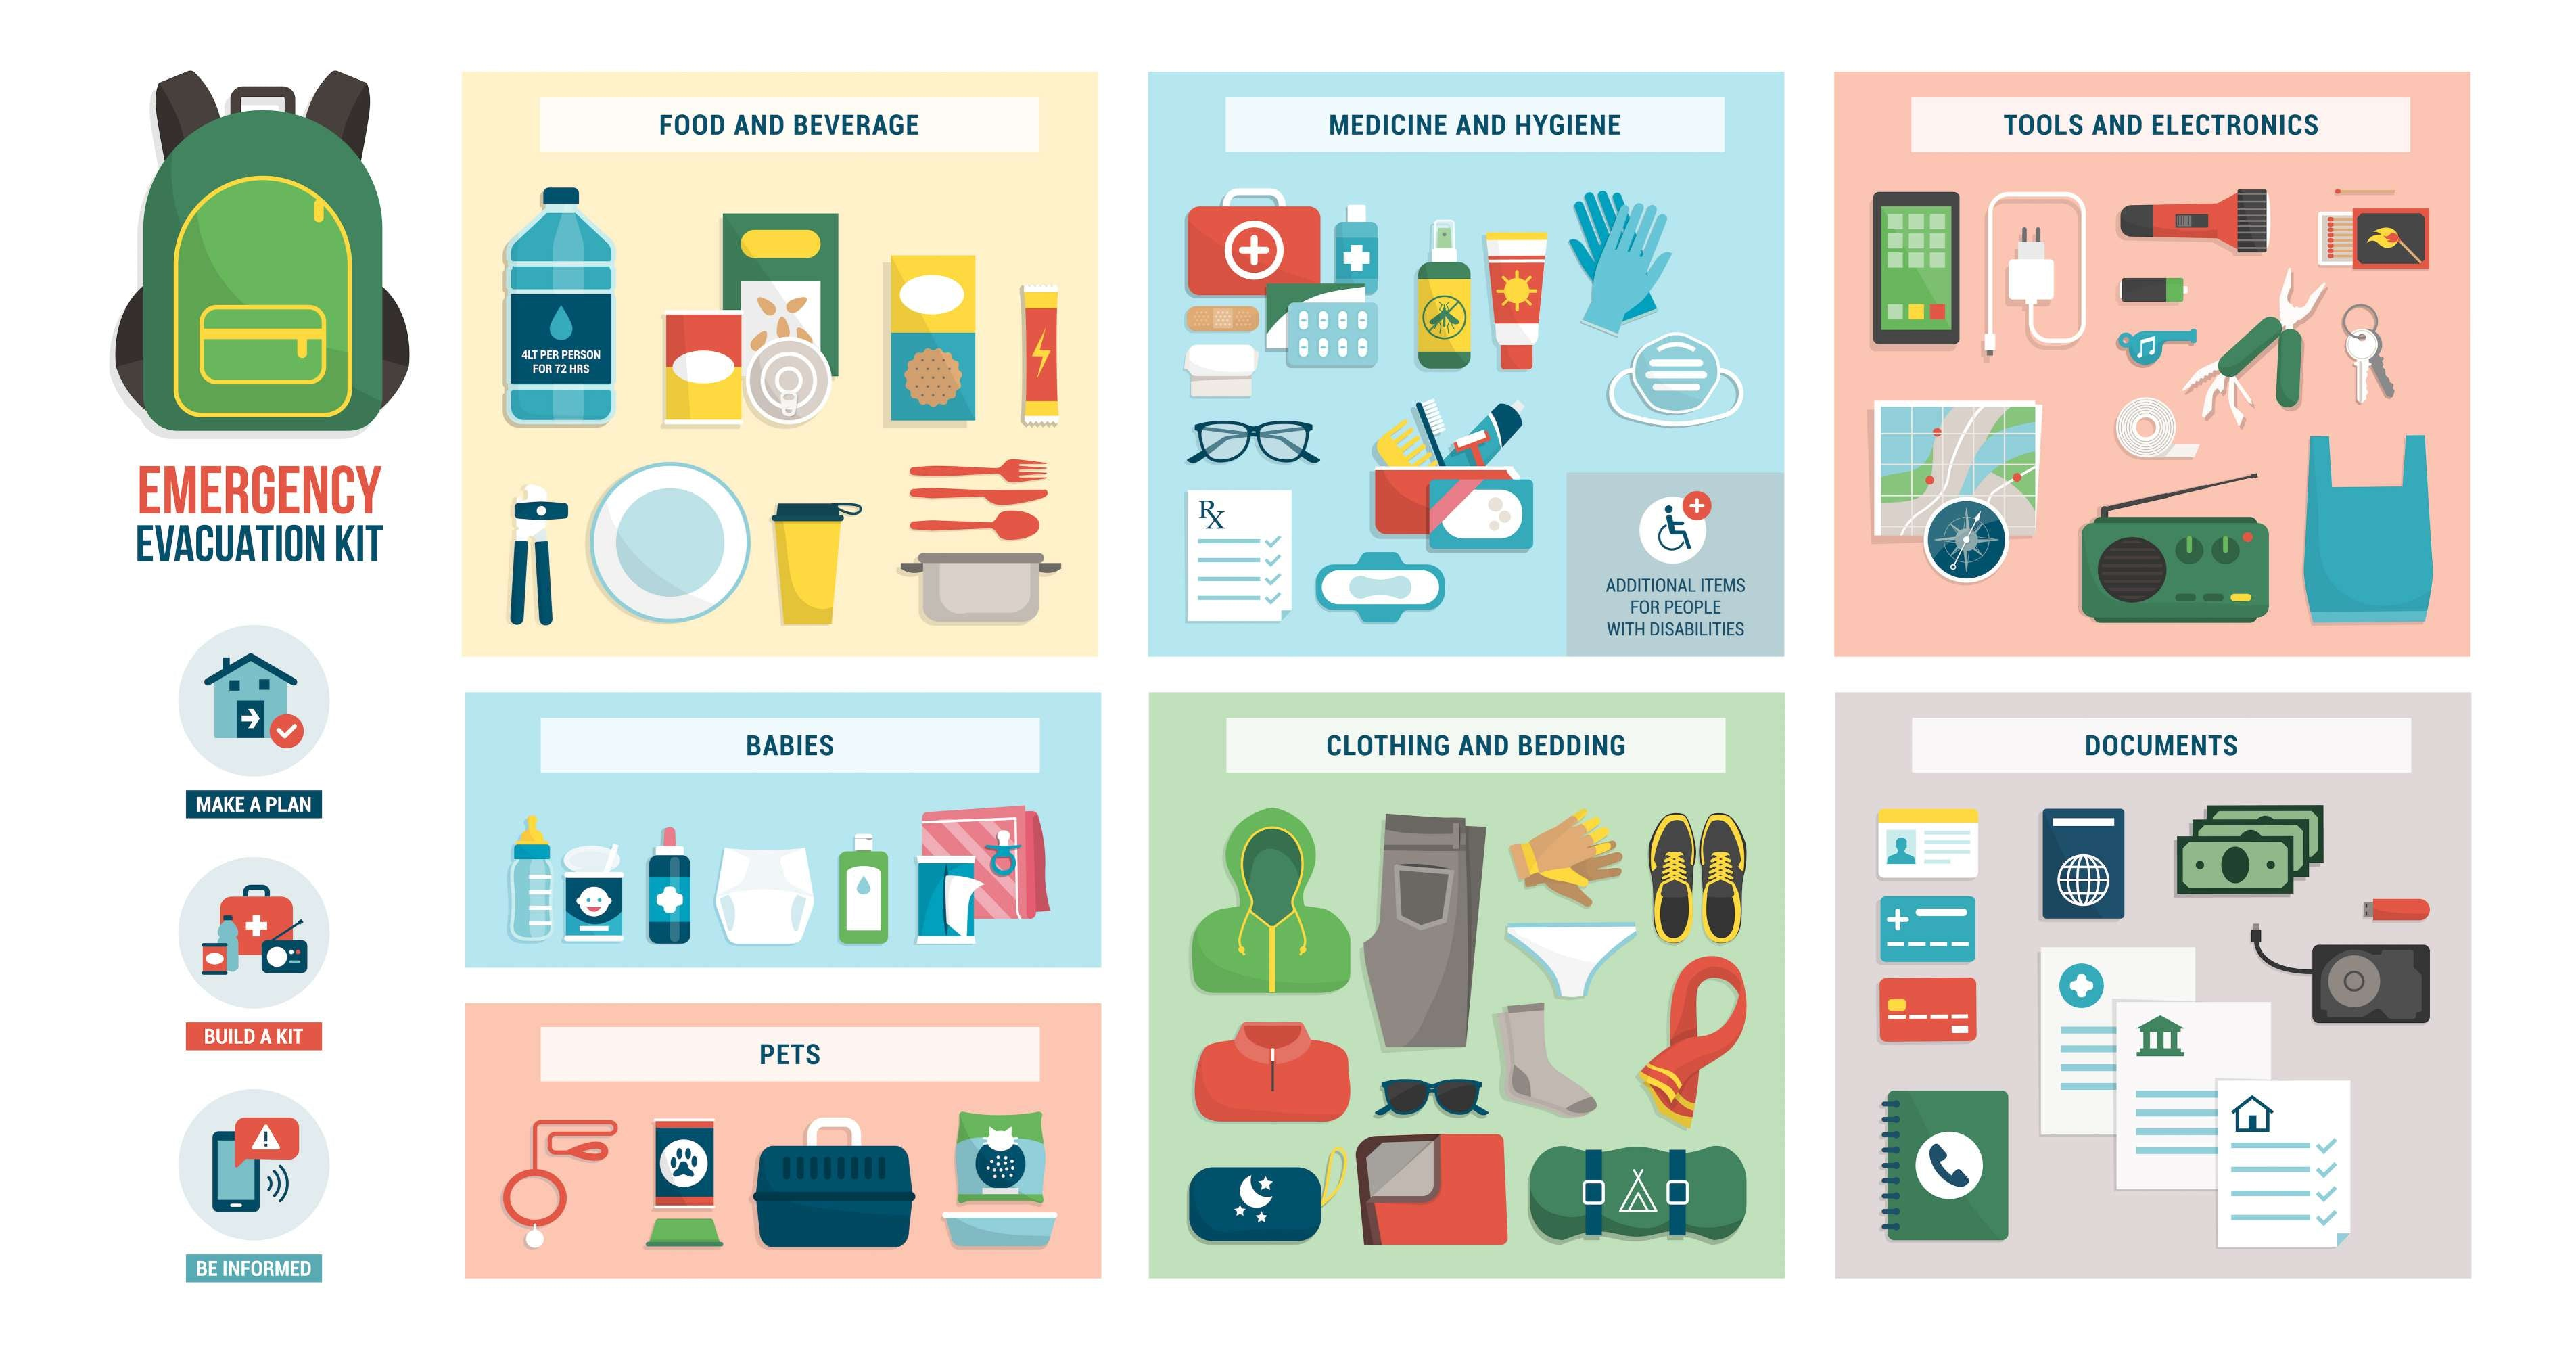 Breakdown of essential items one should have in their emergency kit including food, water, power, and tools.